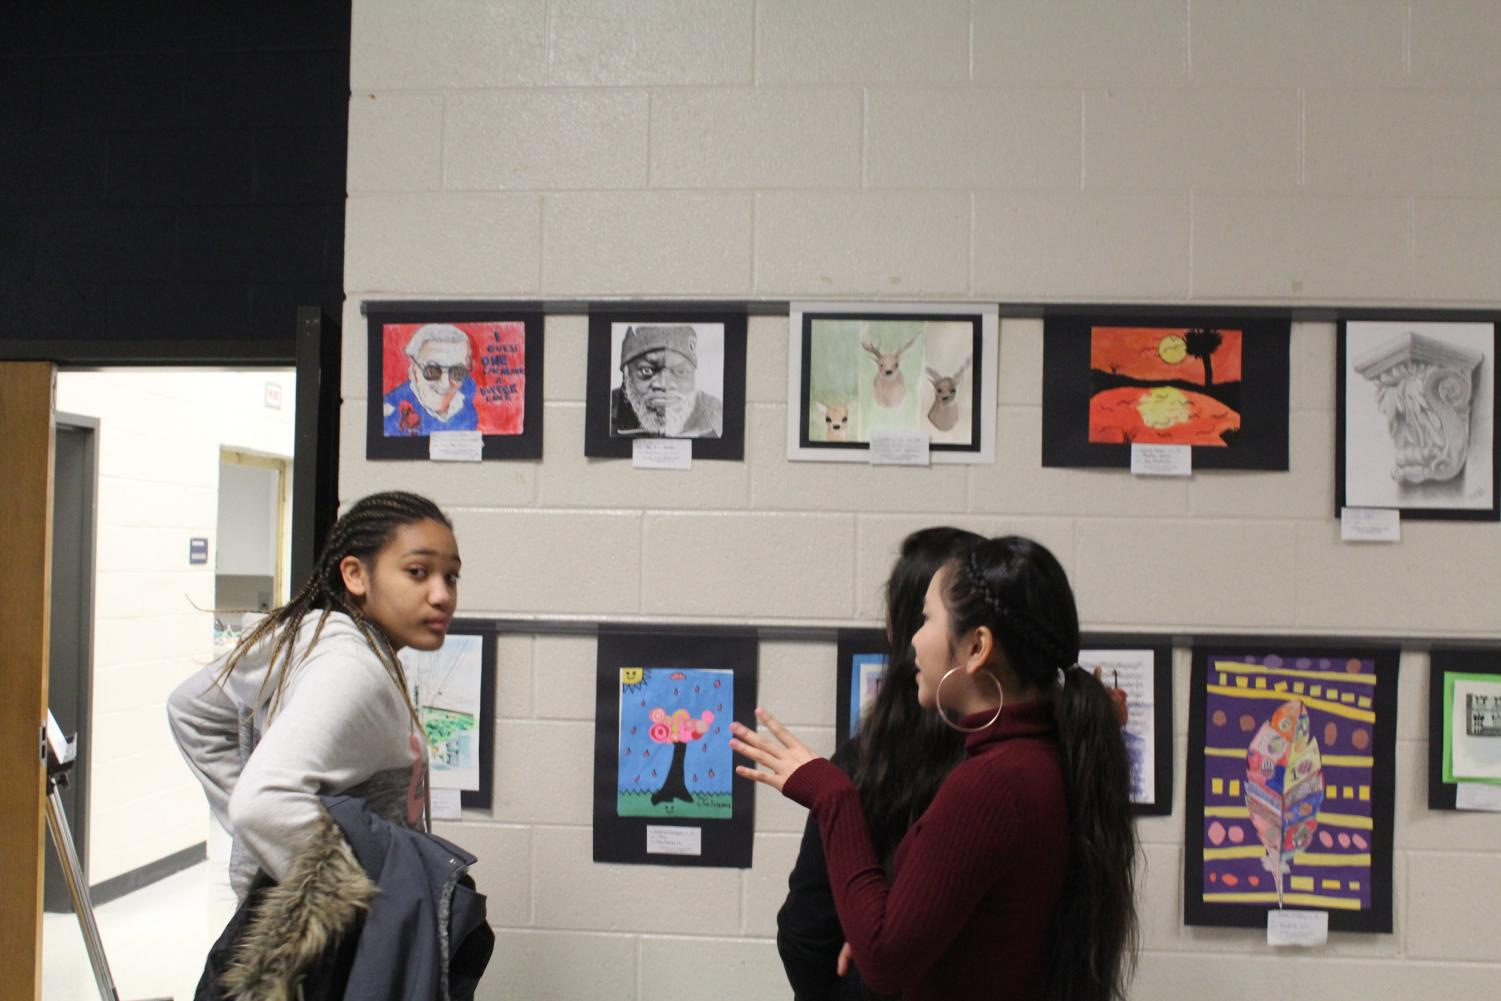 Visiting students from Awtrey Middle School admire the work from Mrs. Dowling's & Mrs. Brewer's art class. Yesterday marked the beginning of the NC Visual Art class' annual Art Show; during this exhibition, up and coming art students from all of the NC feeder schools (Barber, Paulding, etc.) come to analyze the art of Brewer's and Dowling's class, so as to gain a better understanding of techniques used.